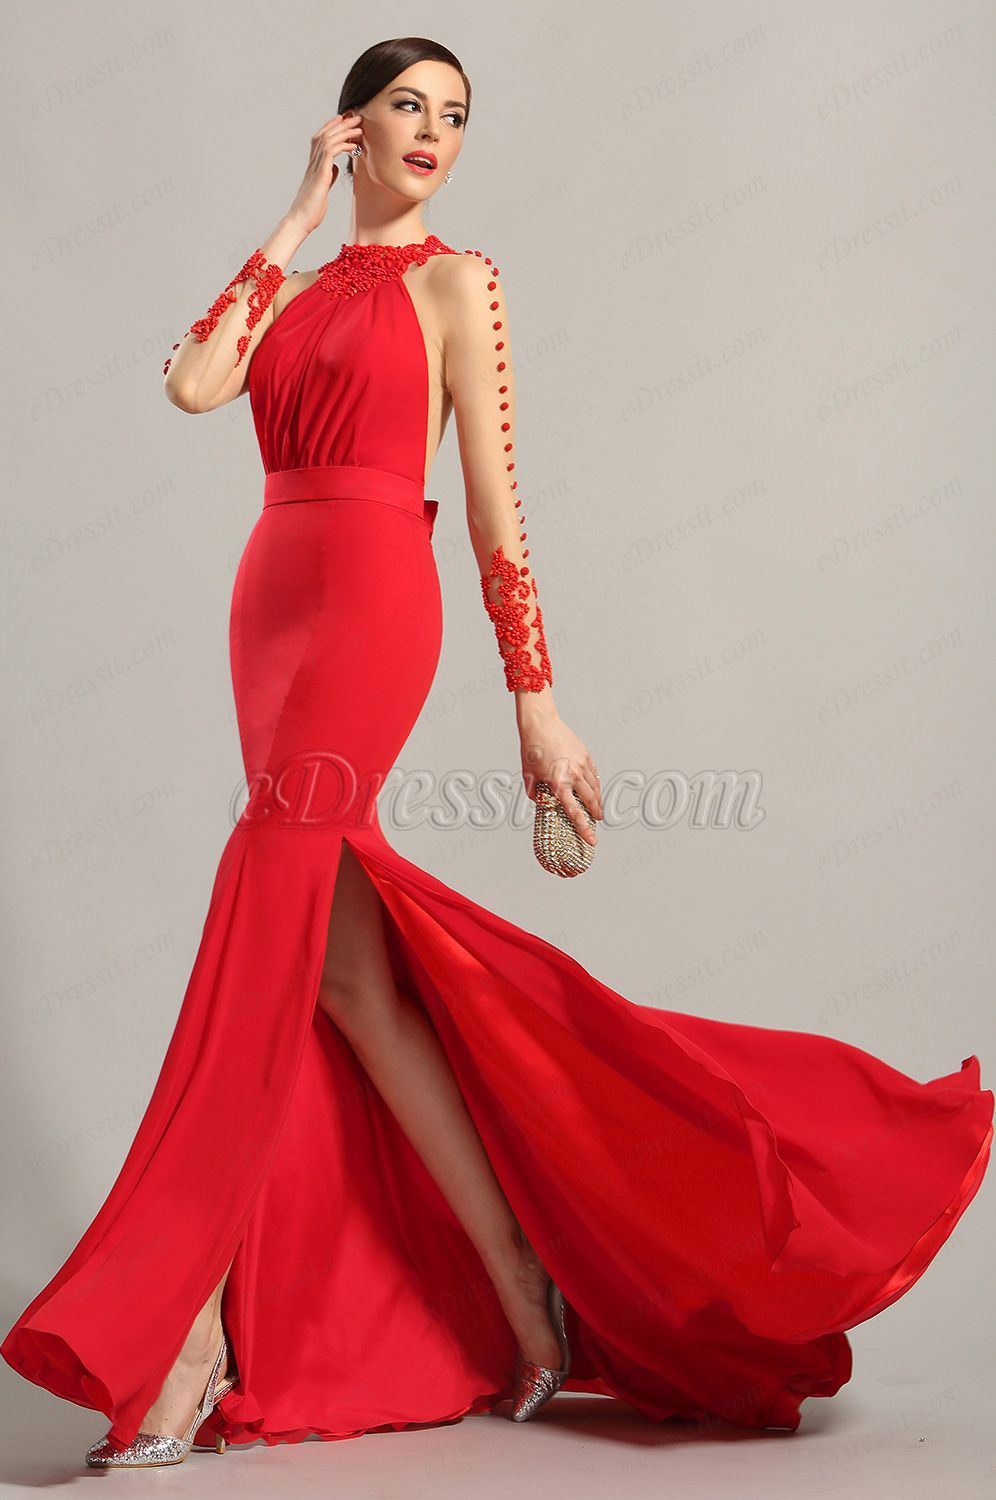 Edressit long sleeves red evening dress prom gown